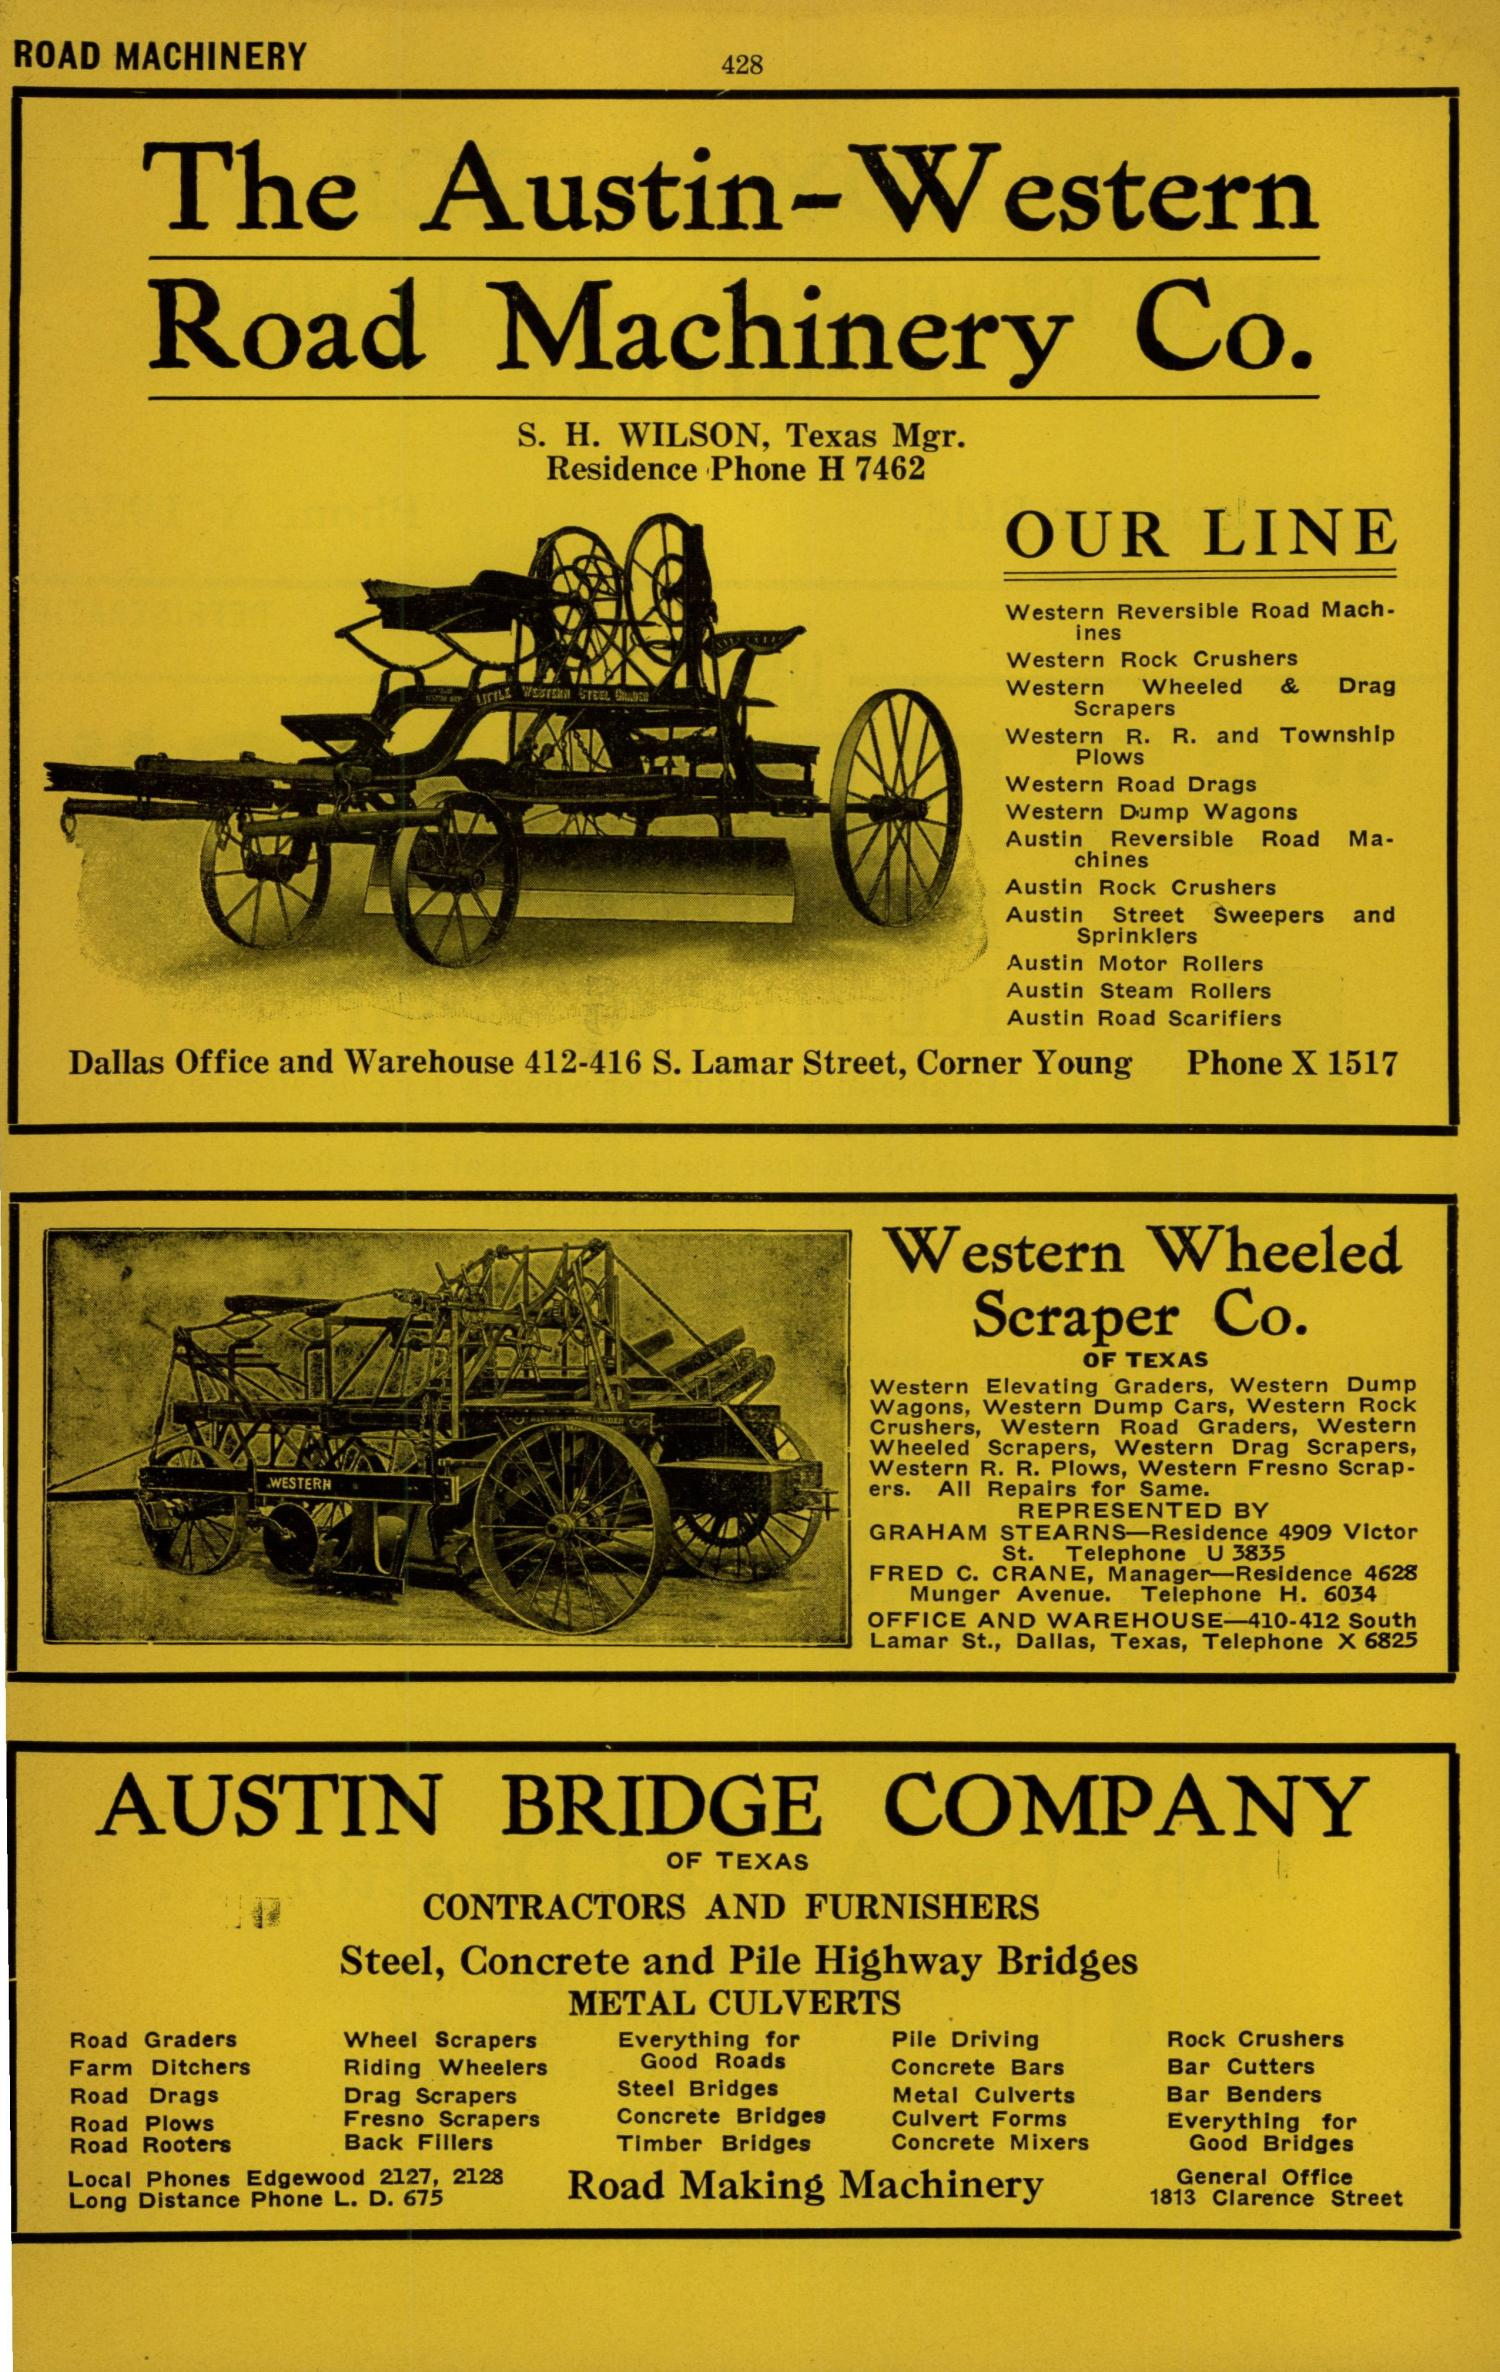 Dallas City Directory, 1924 - Page 428 - The Portal to Texas